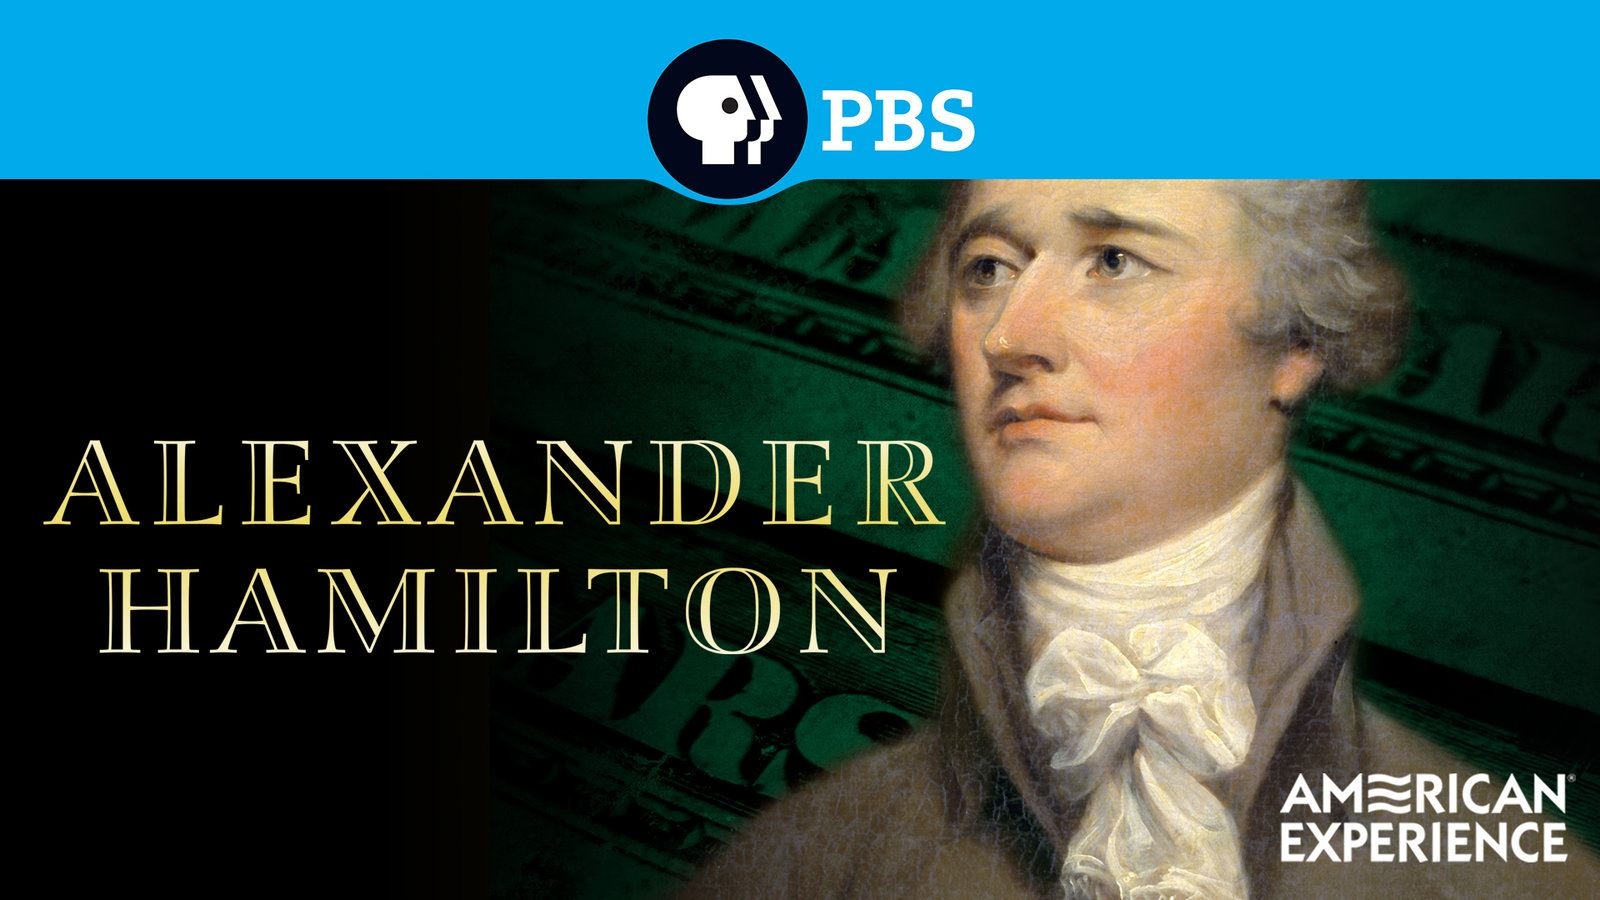 Alexander Hamilton PBS Documentary Opens in new window